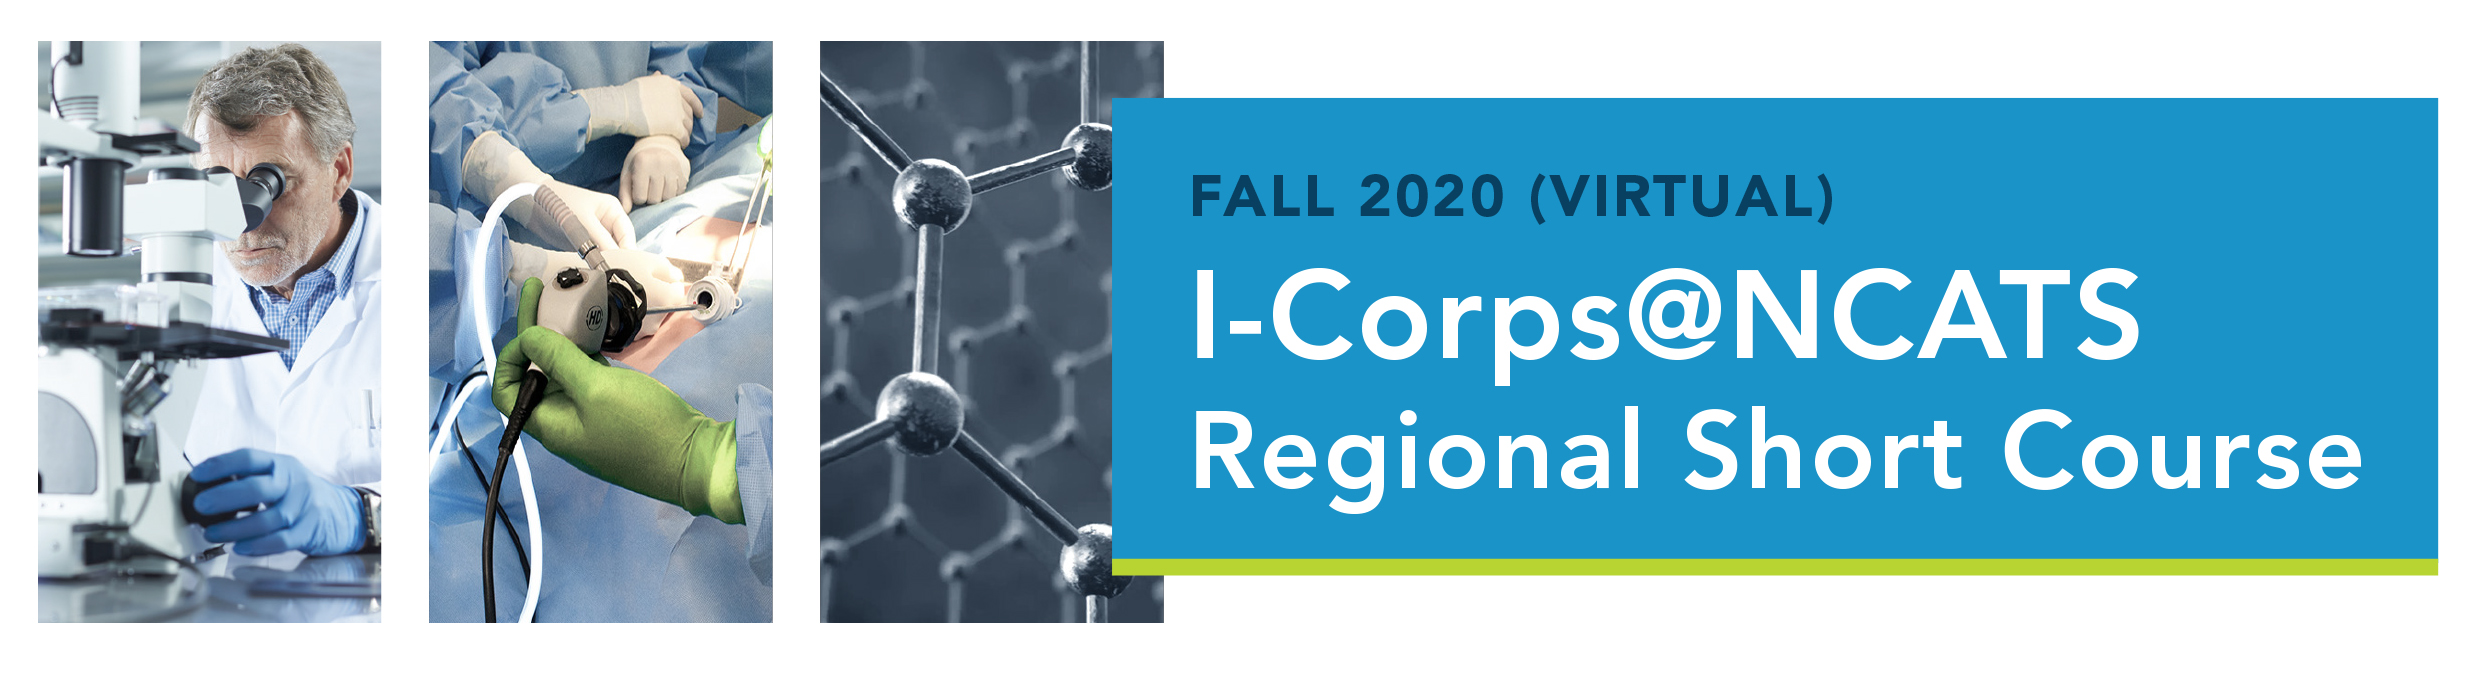 A banner image highlighting the Fall 2020 I-Corps@NCATS Regional Short Course includes the event title and three stock images of scientific equipment.